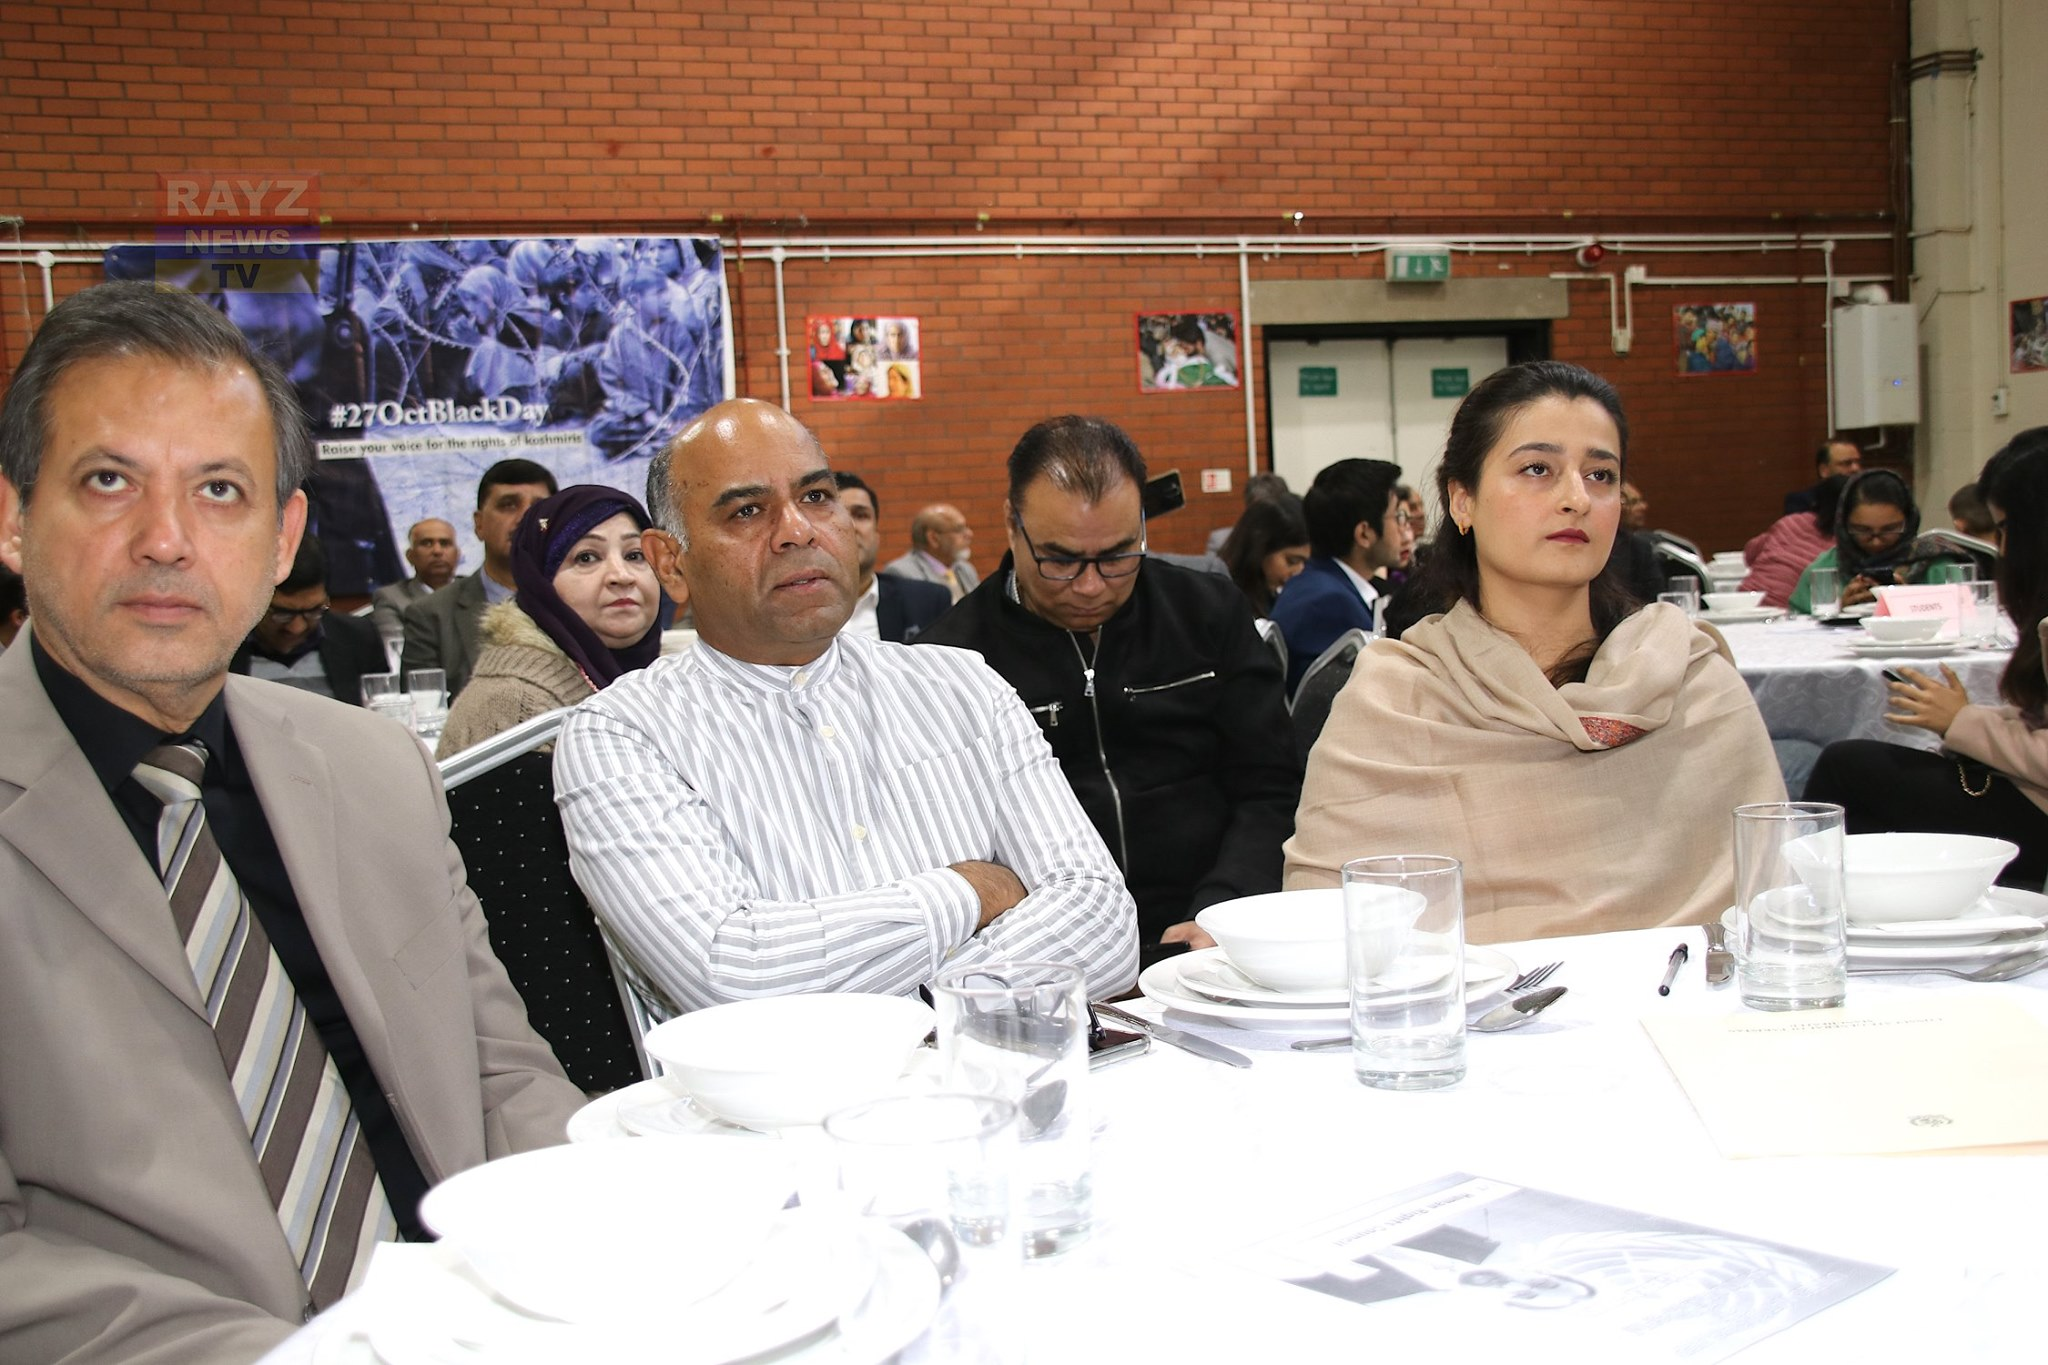 Conulate General of Pakistan Manchester organised an event to protest the 27th Oct Blackday